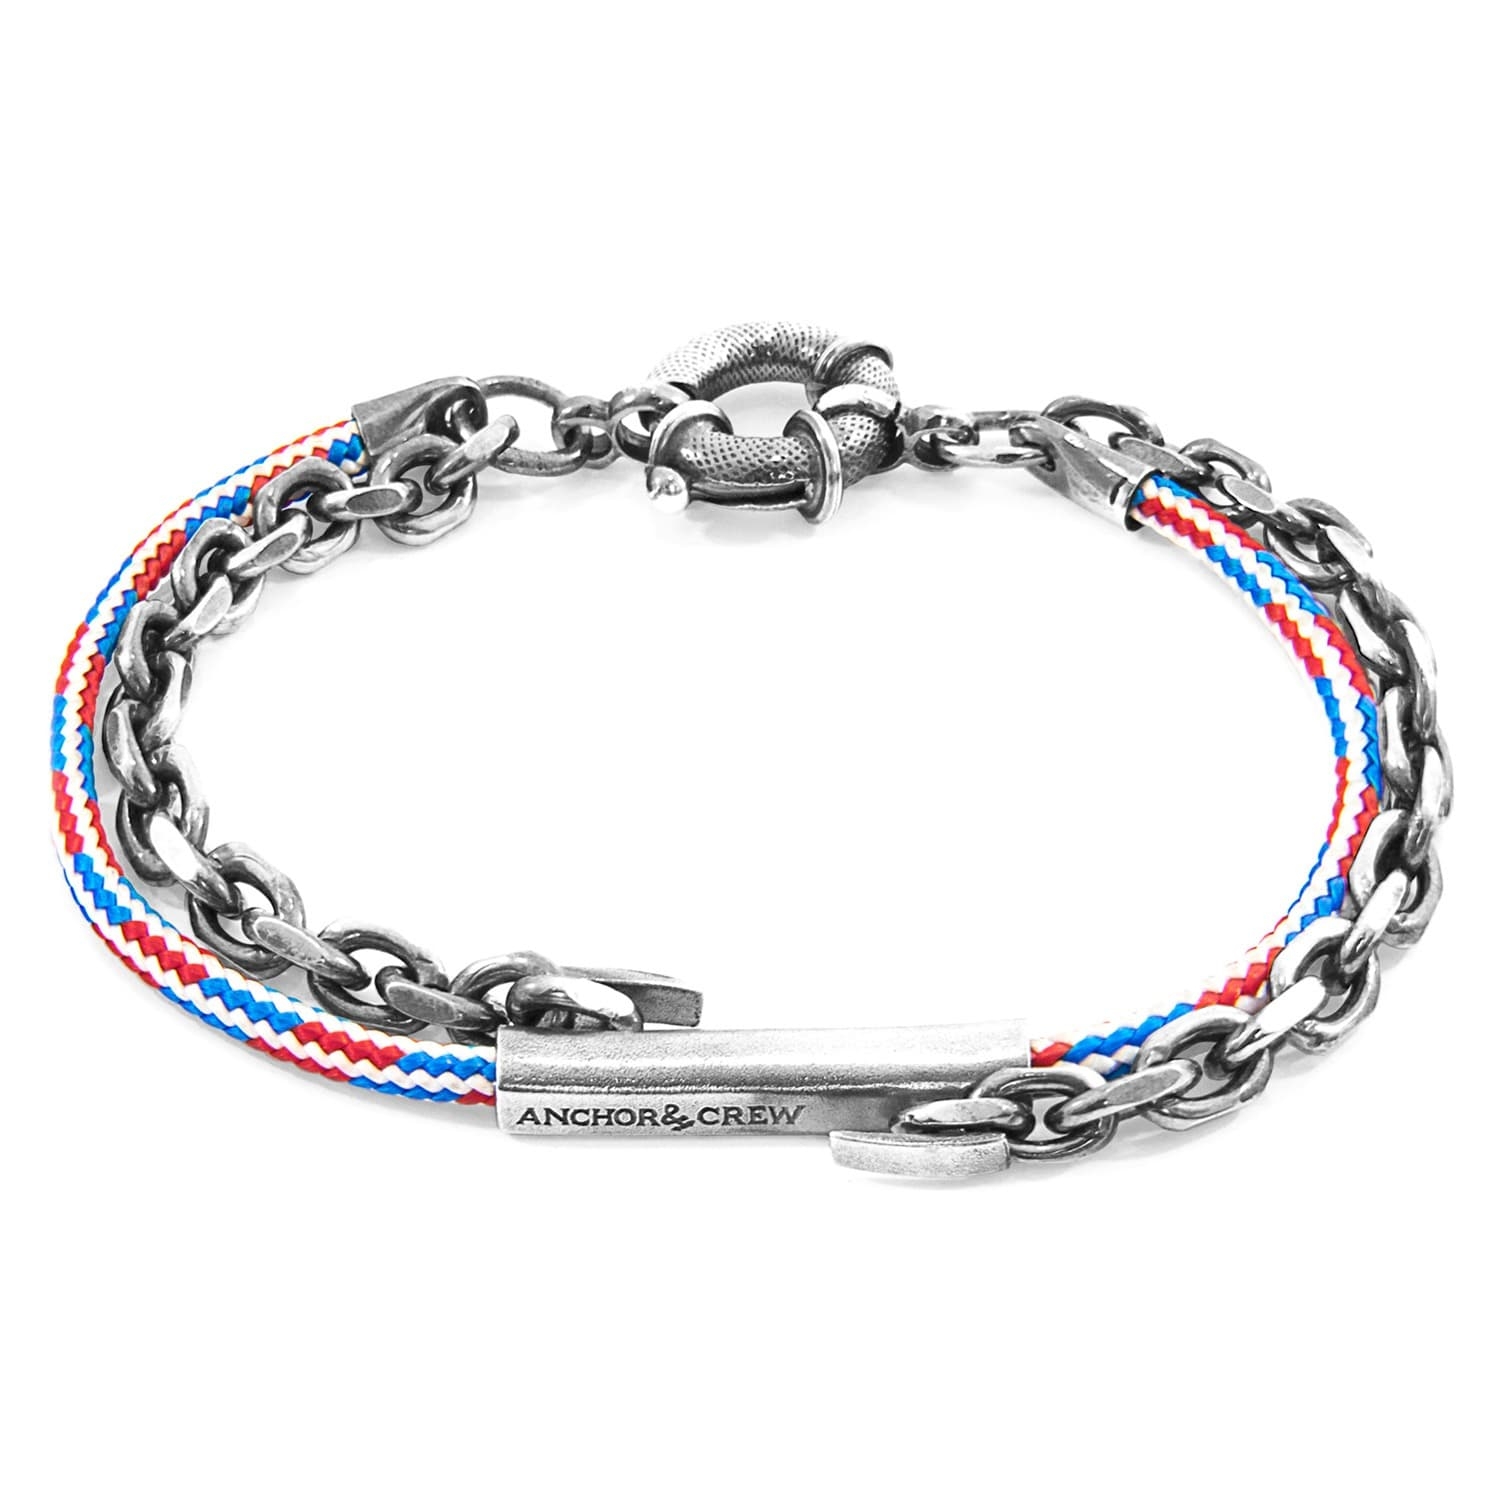 Project-Rwb Red White & Blue Belfast Silver & Rope Bracelet by ANCHOR & CREW